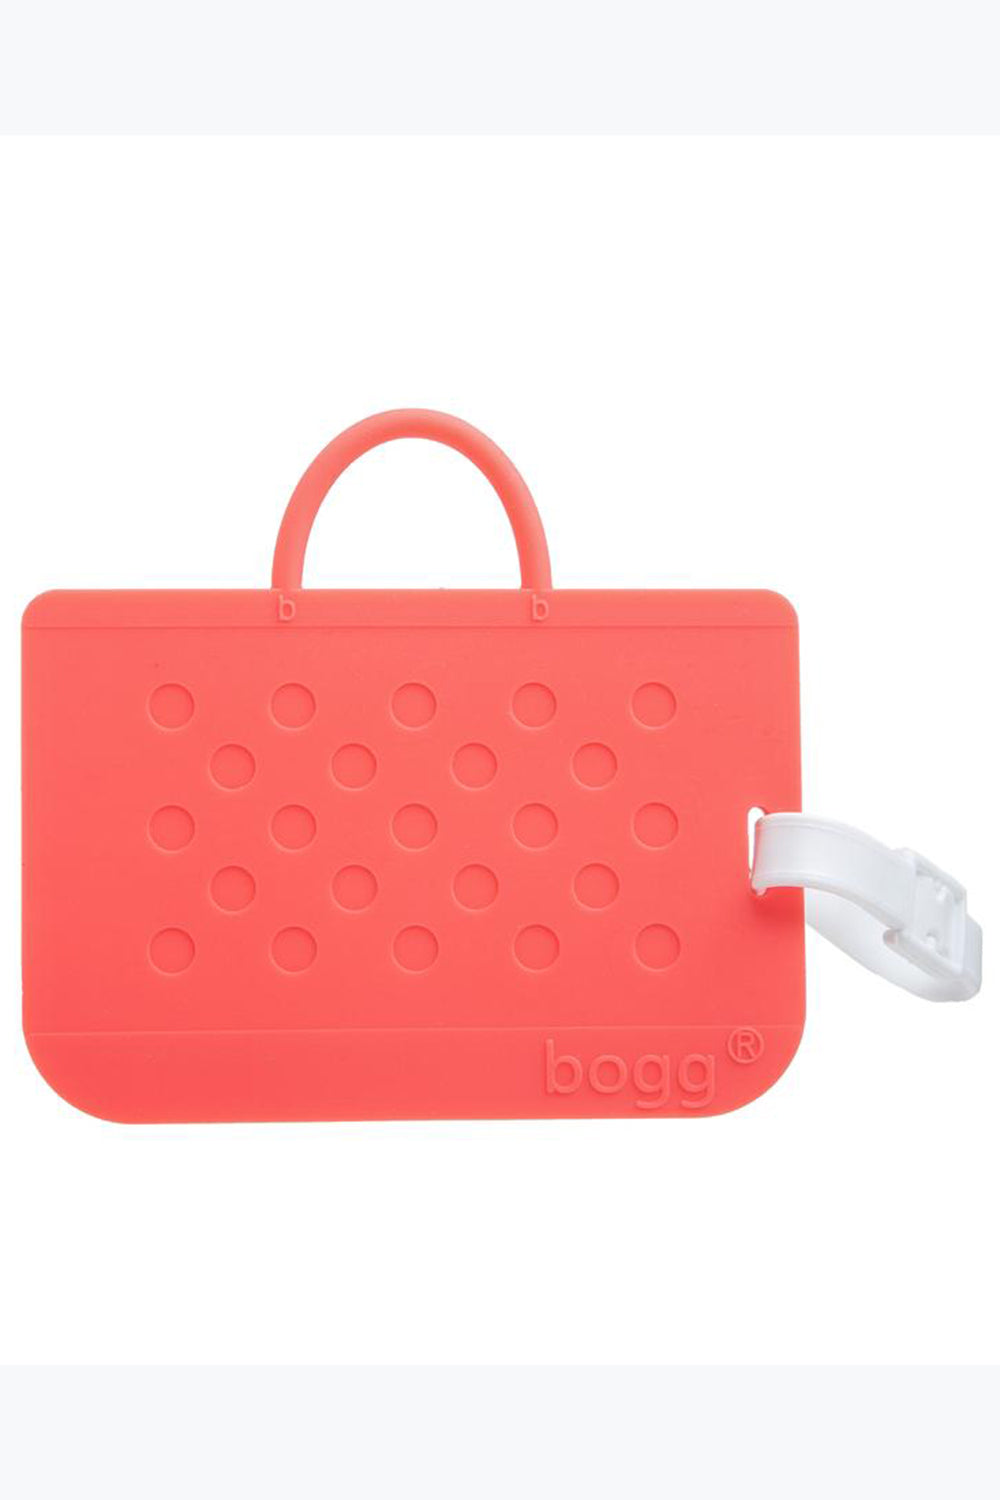 Bogg Bag Luggage Tag - Coral